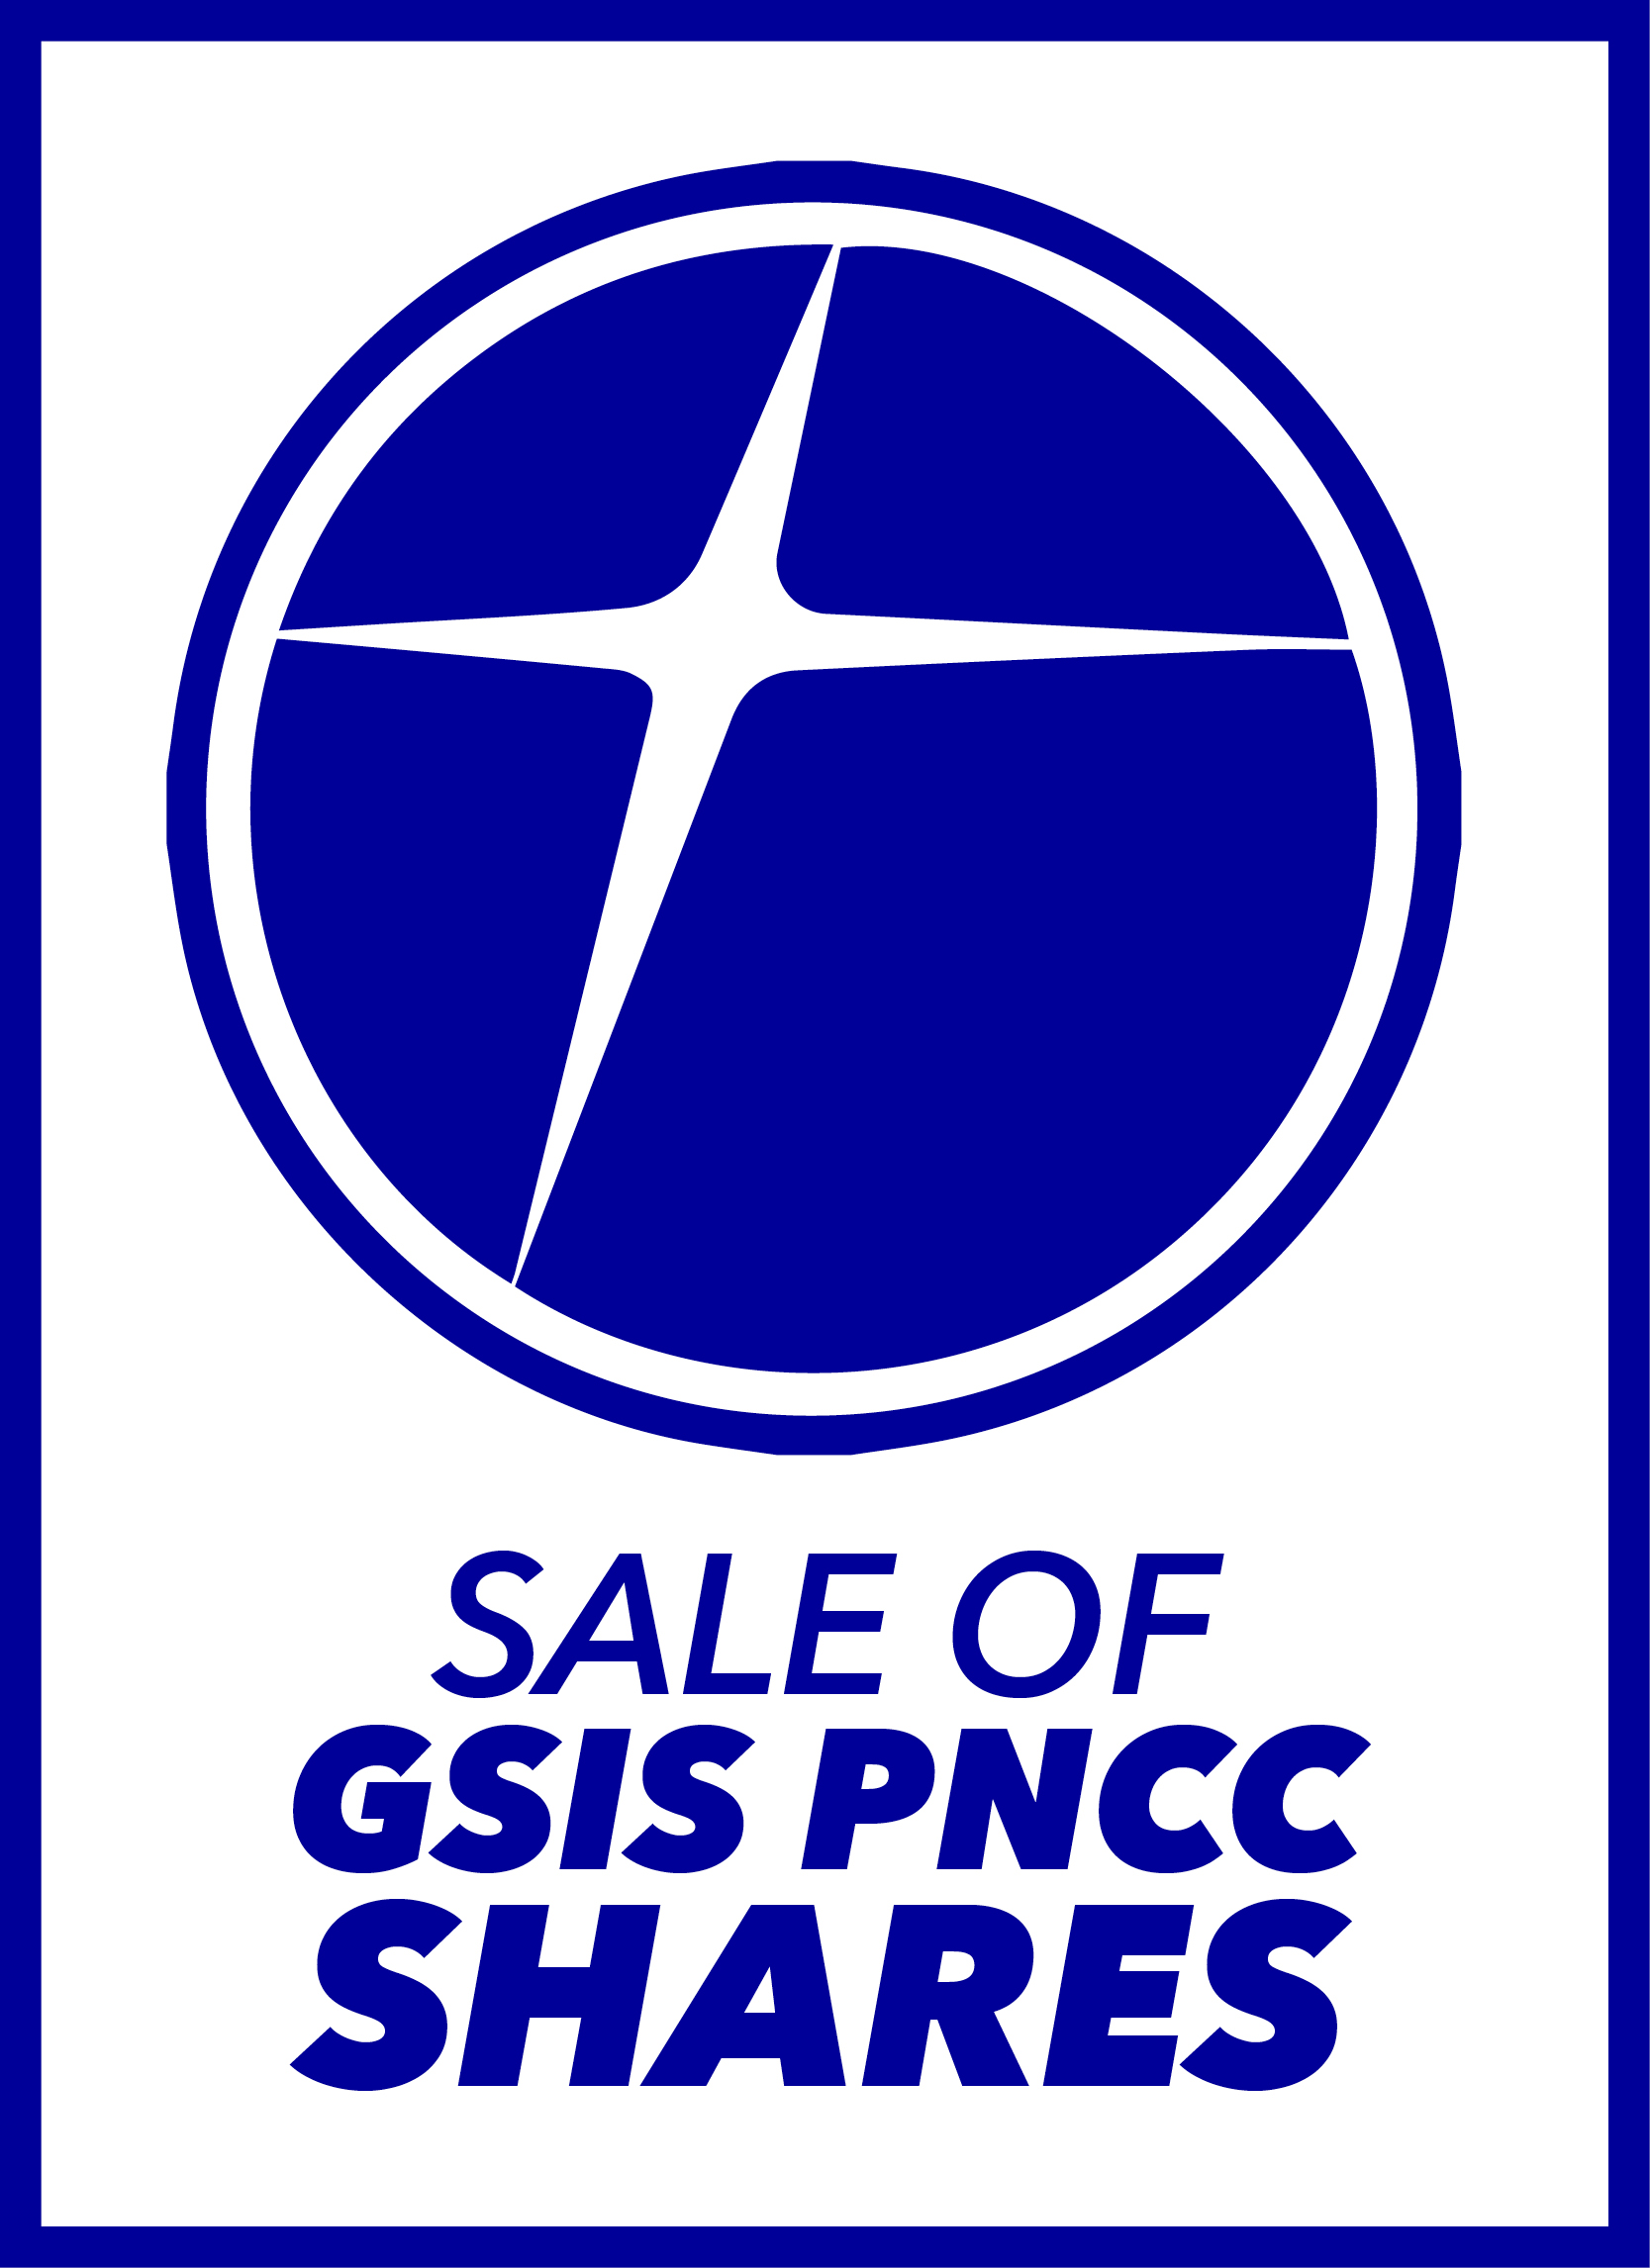 PNCC Sale of GSIS Shares